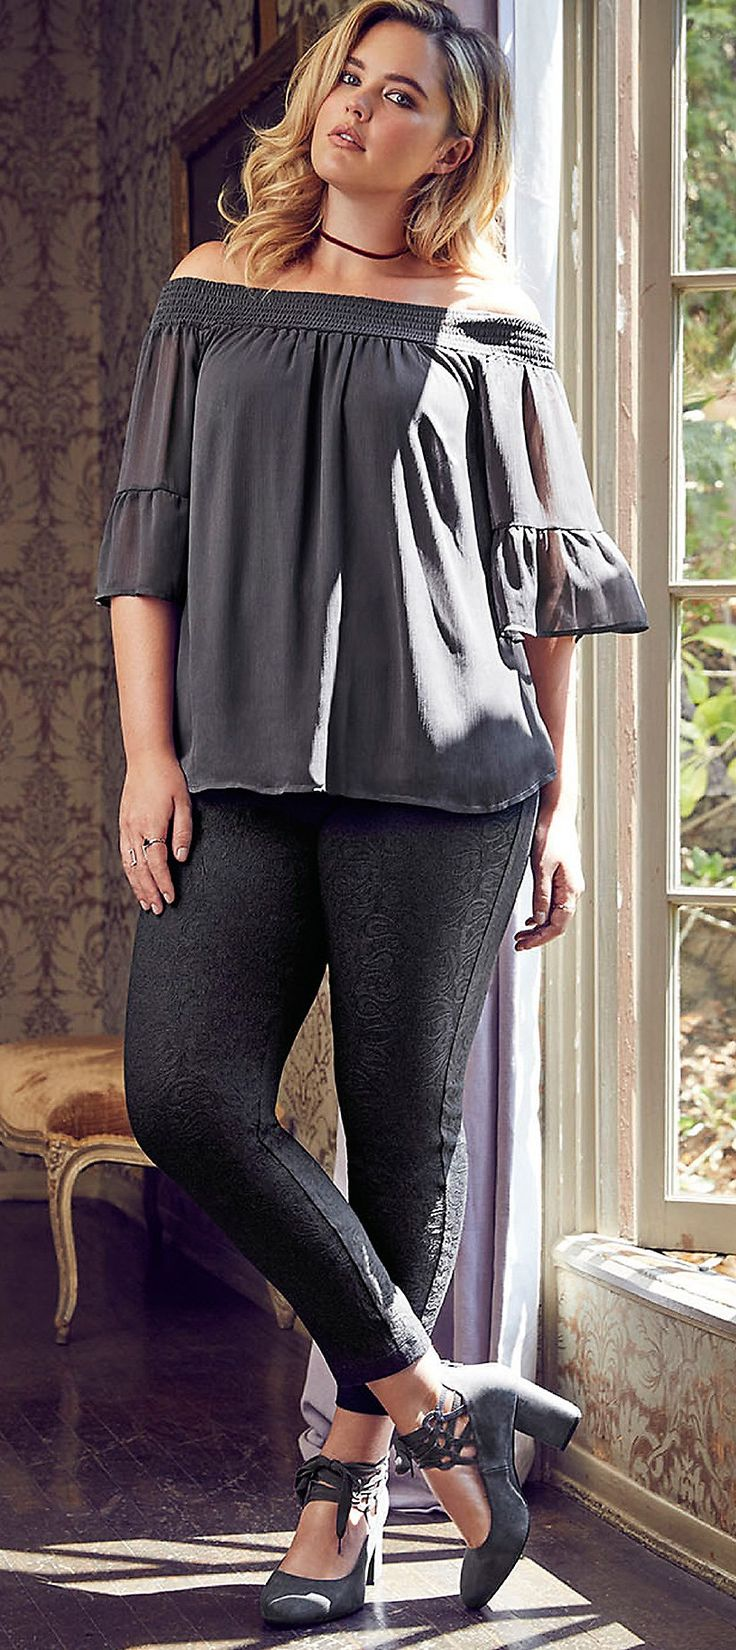 Plus Size Outfit - Shop the Look